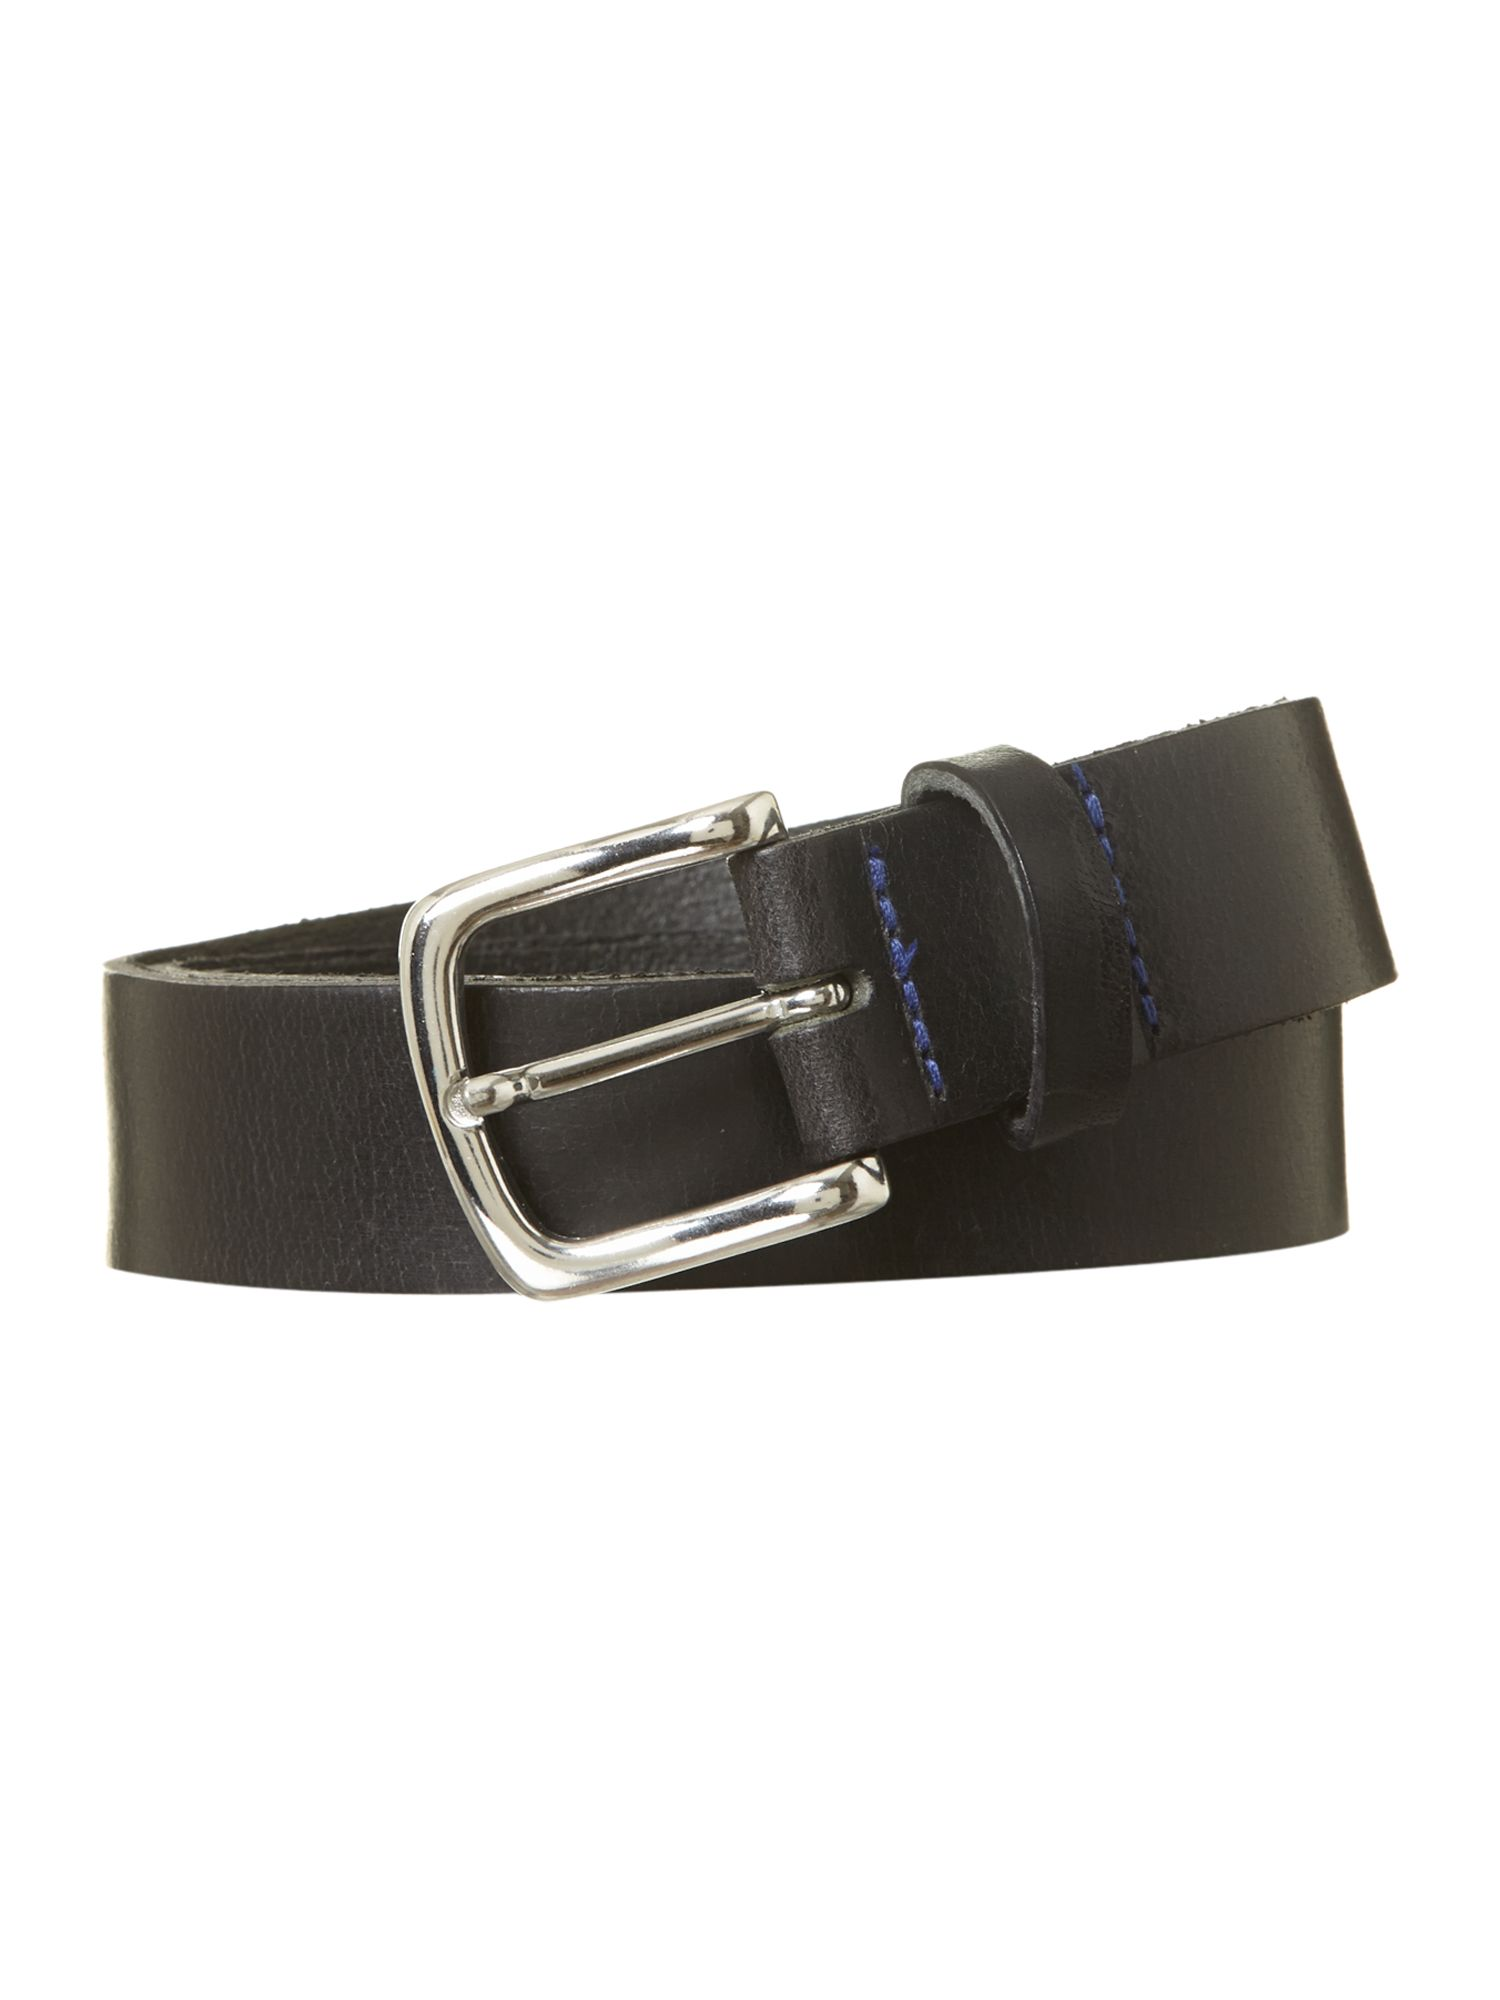 Blue stitch belt